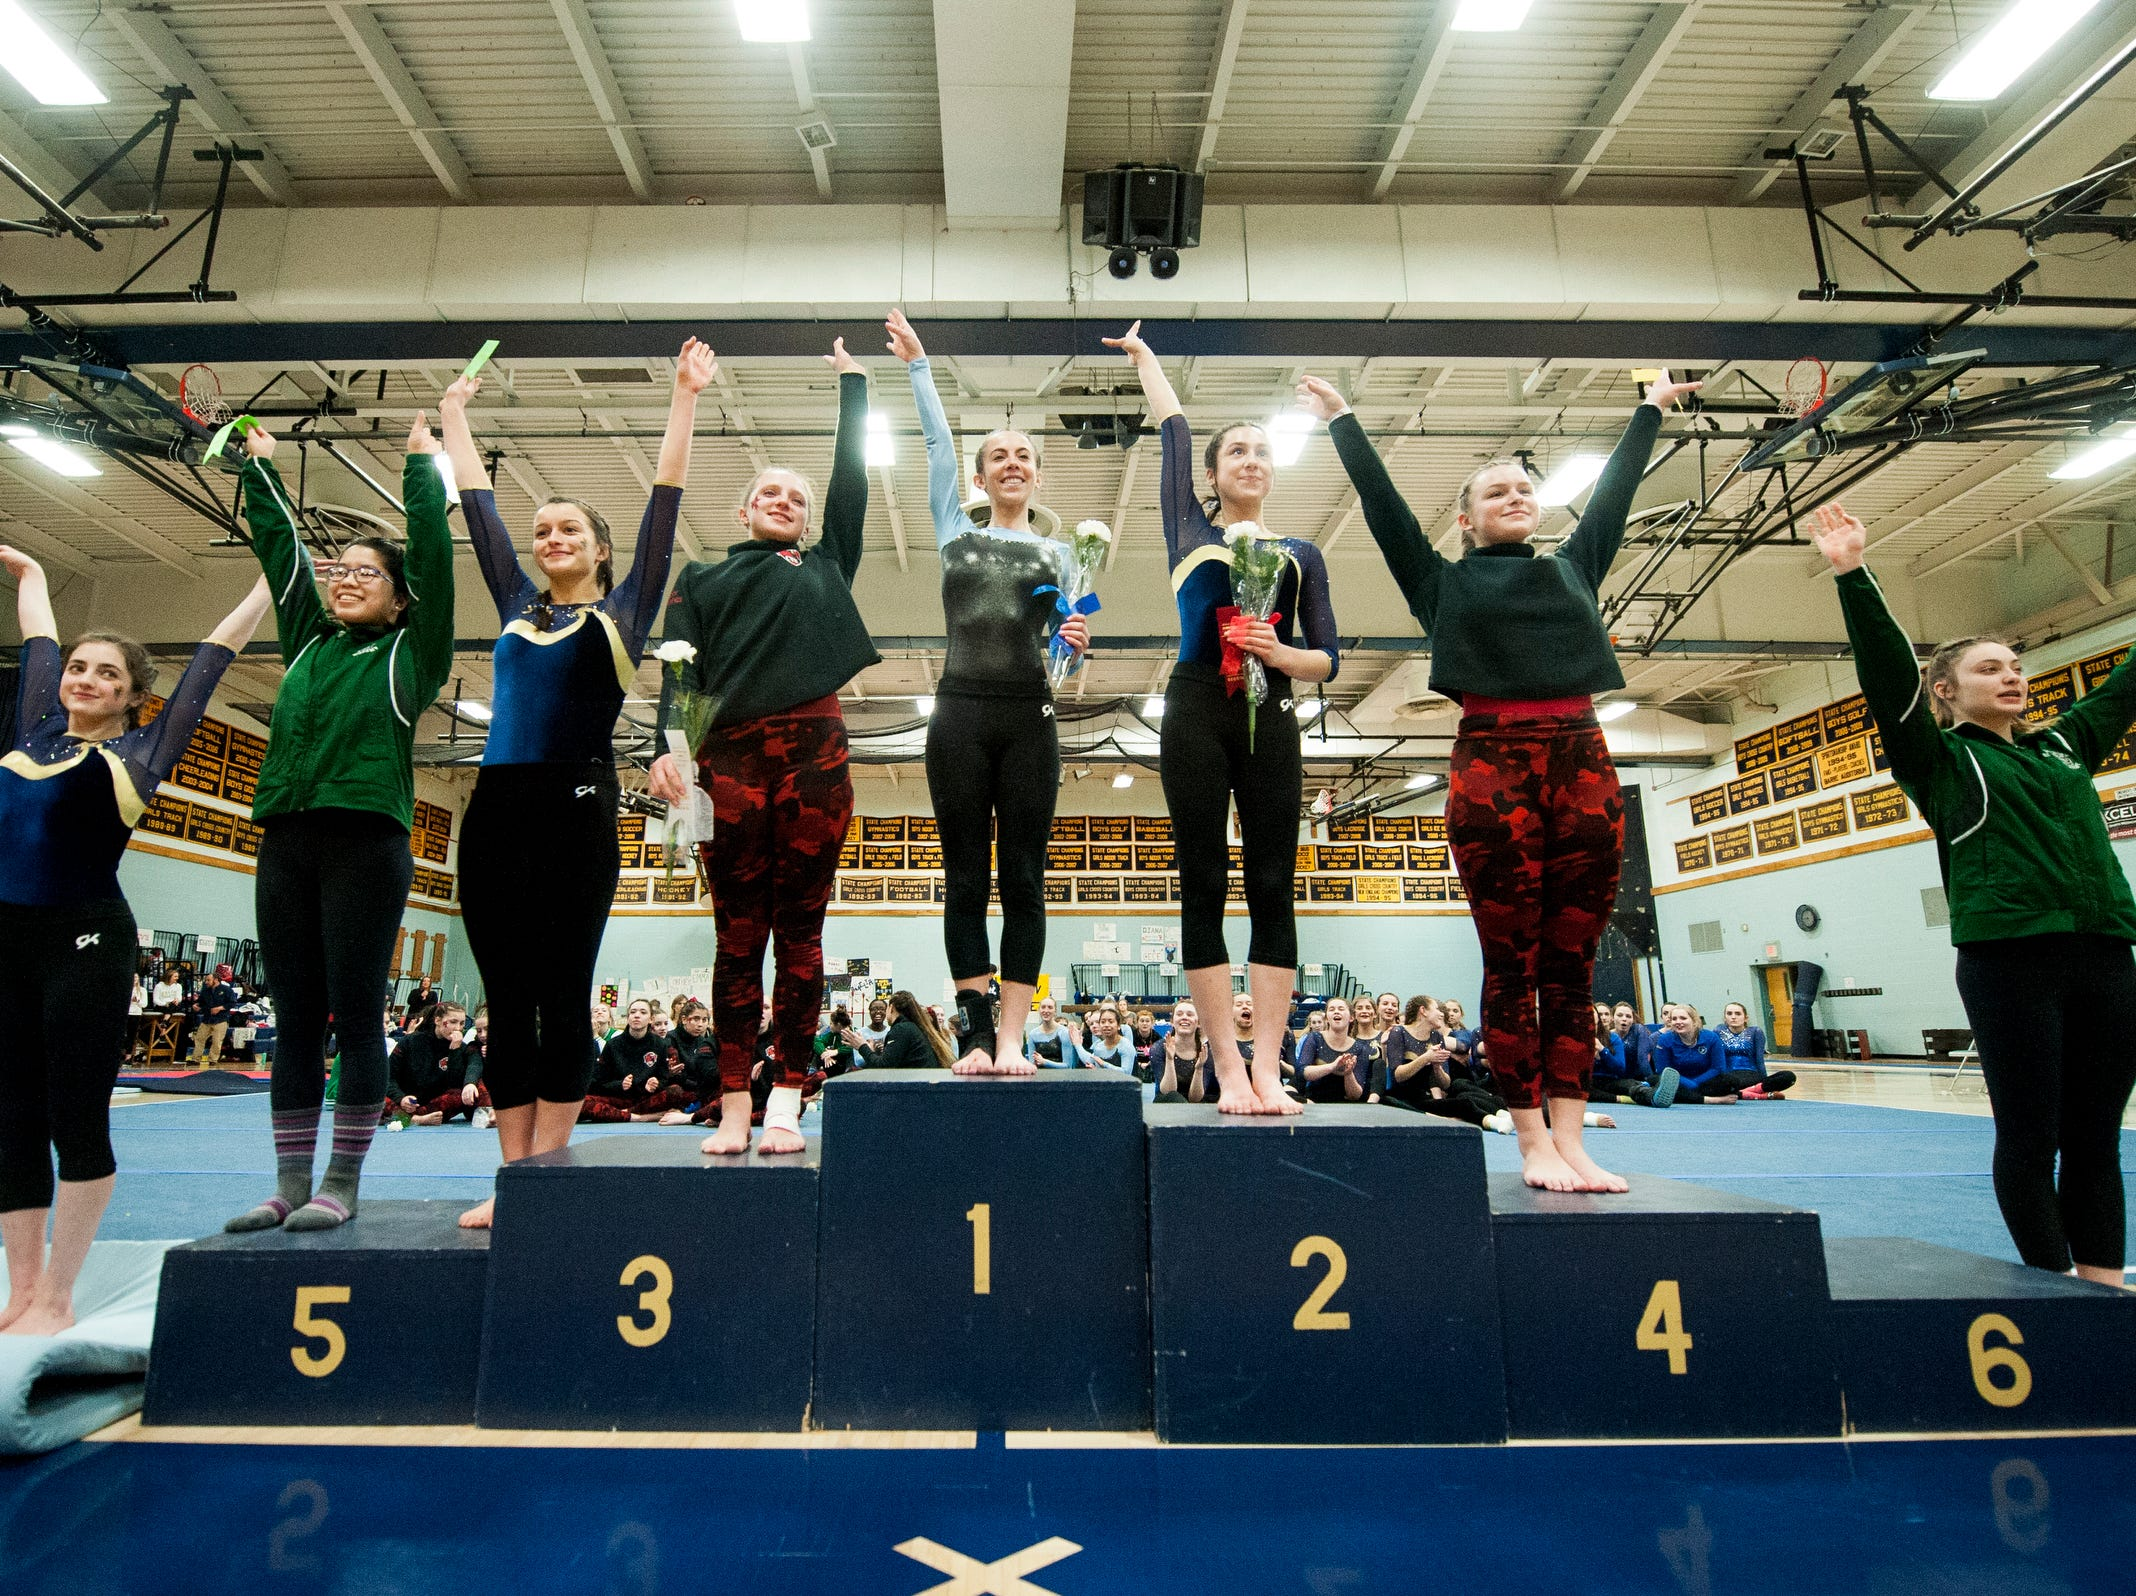 The Individual medal winners for overall performance wave to the crowd during the 2019 high school gymnastics championship at Essex High School on Saturday afternoon February 16, 2019 in Essex, Vermont.